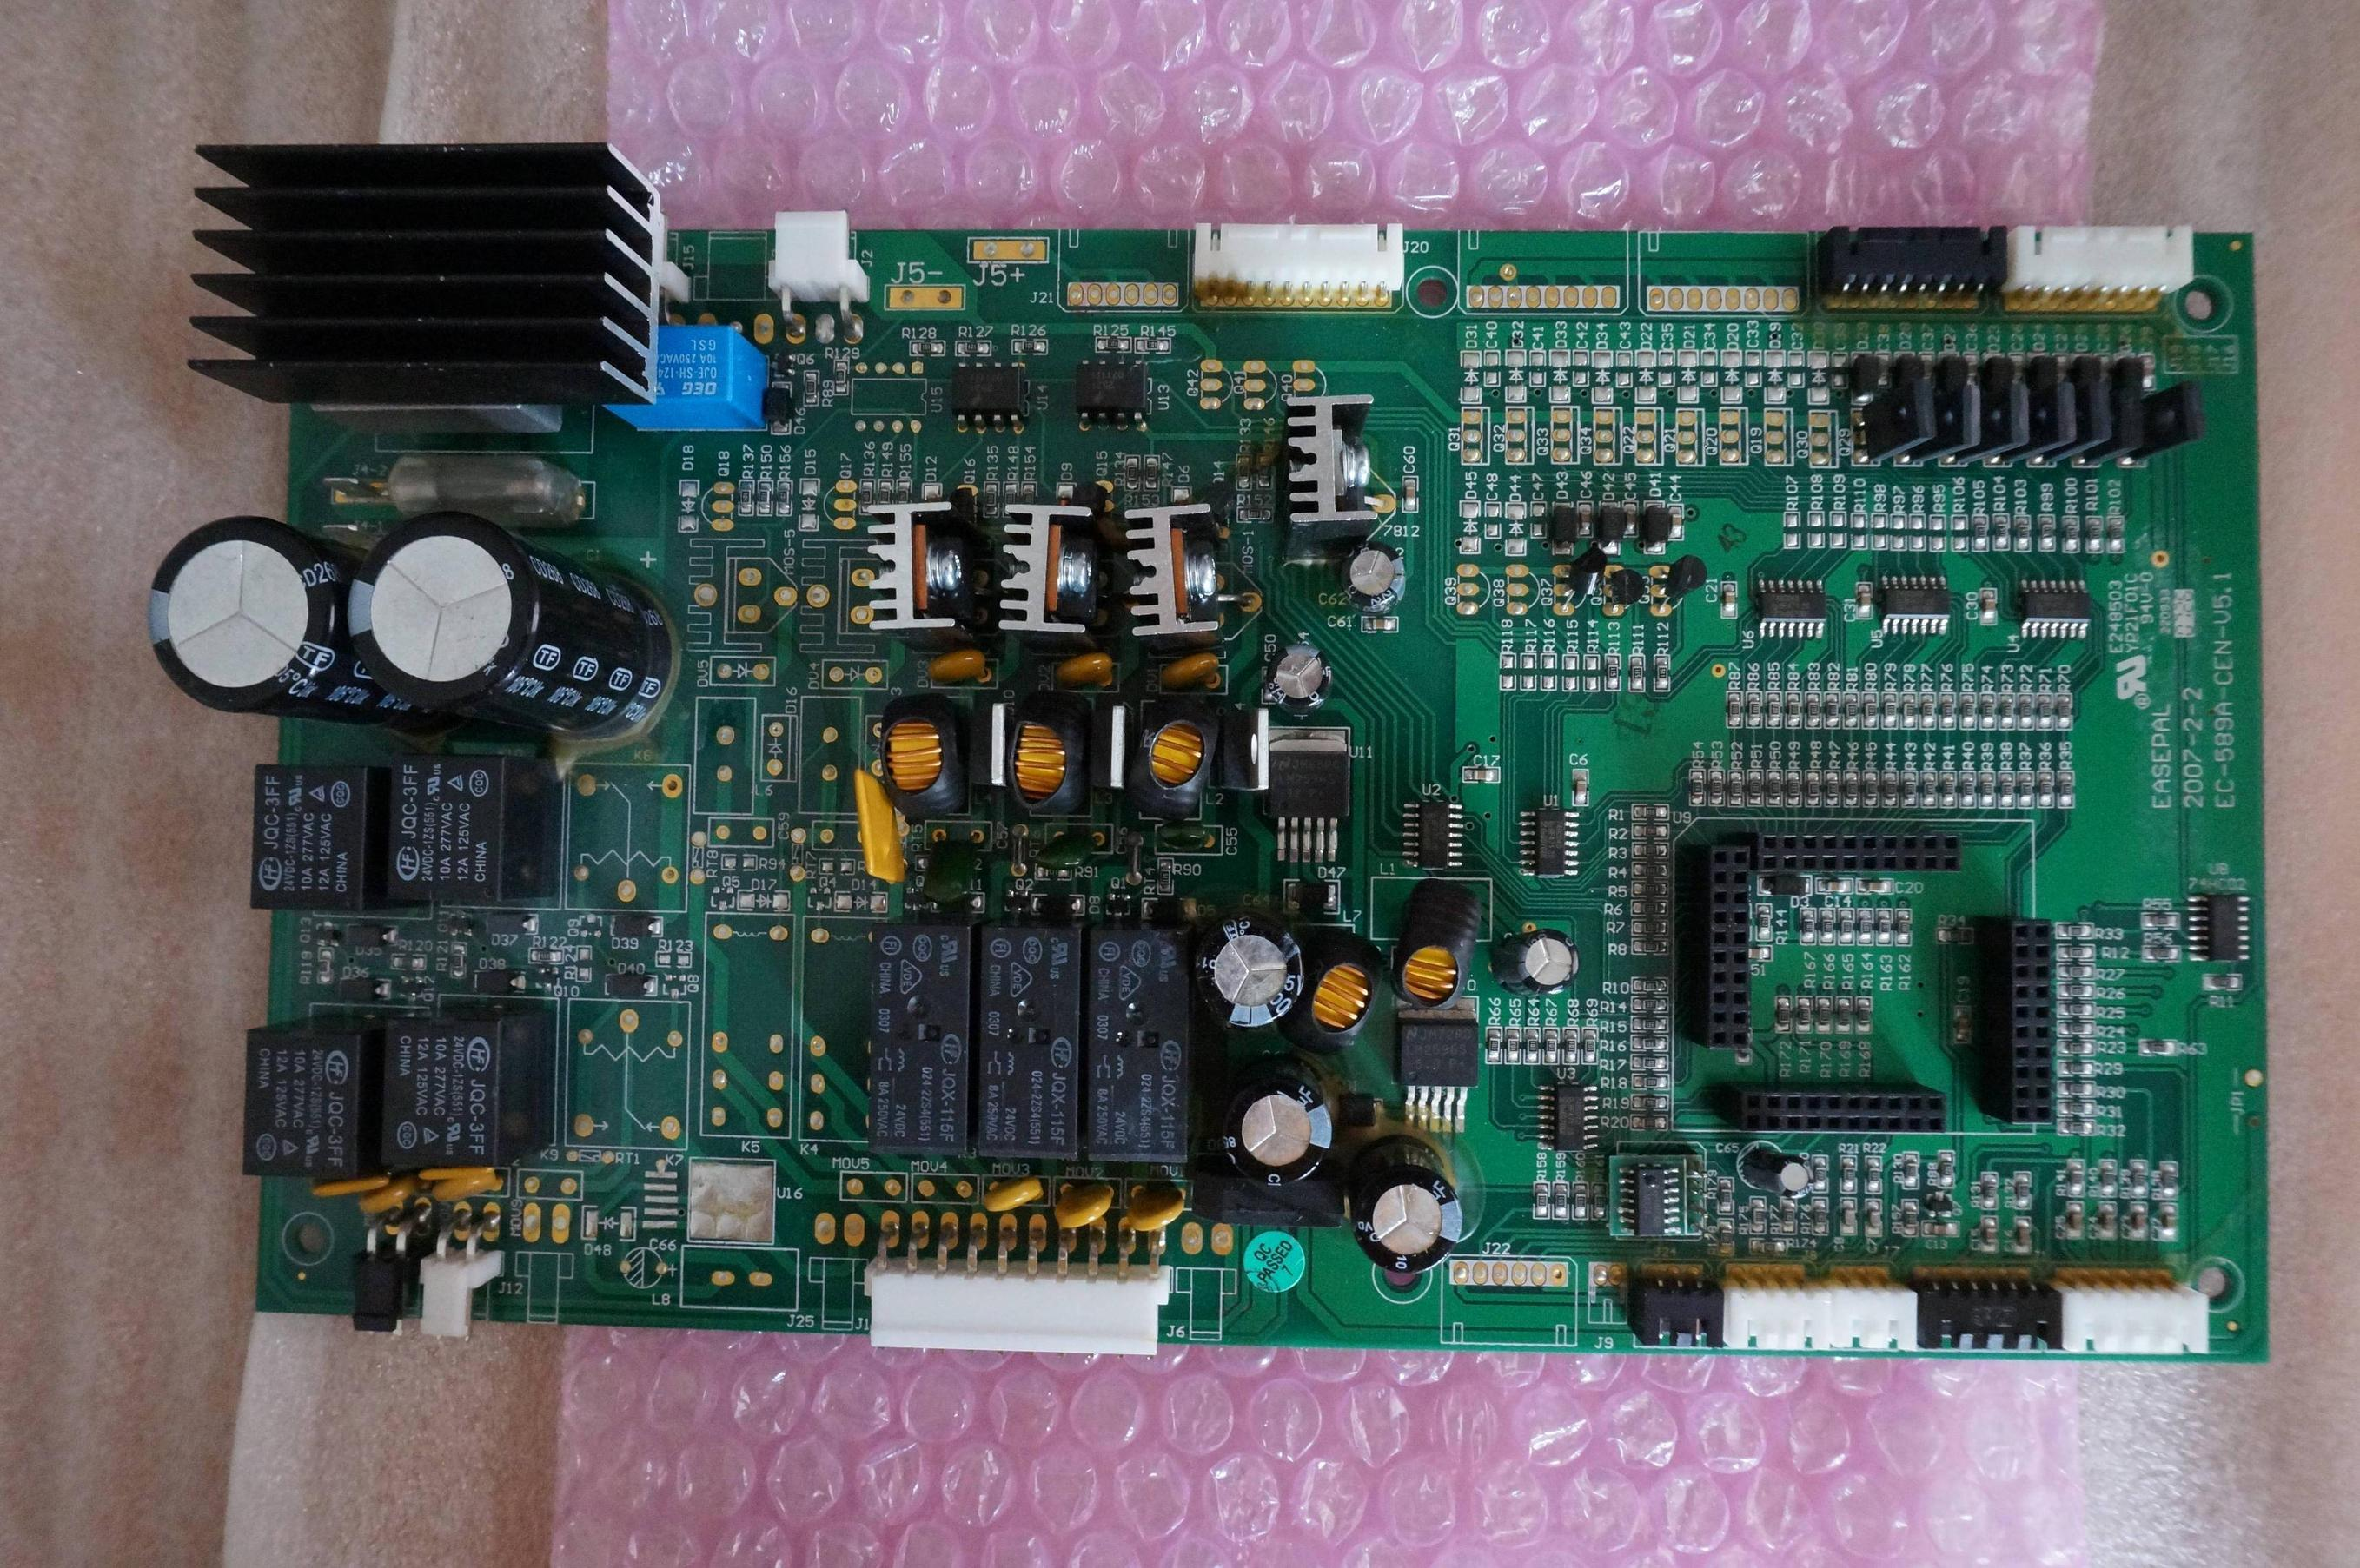 PCB Identification  Many relays 2 LM2596s and other